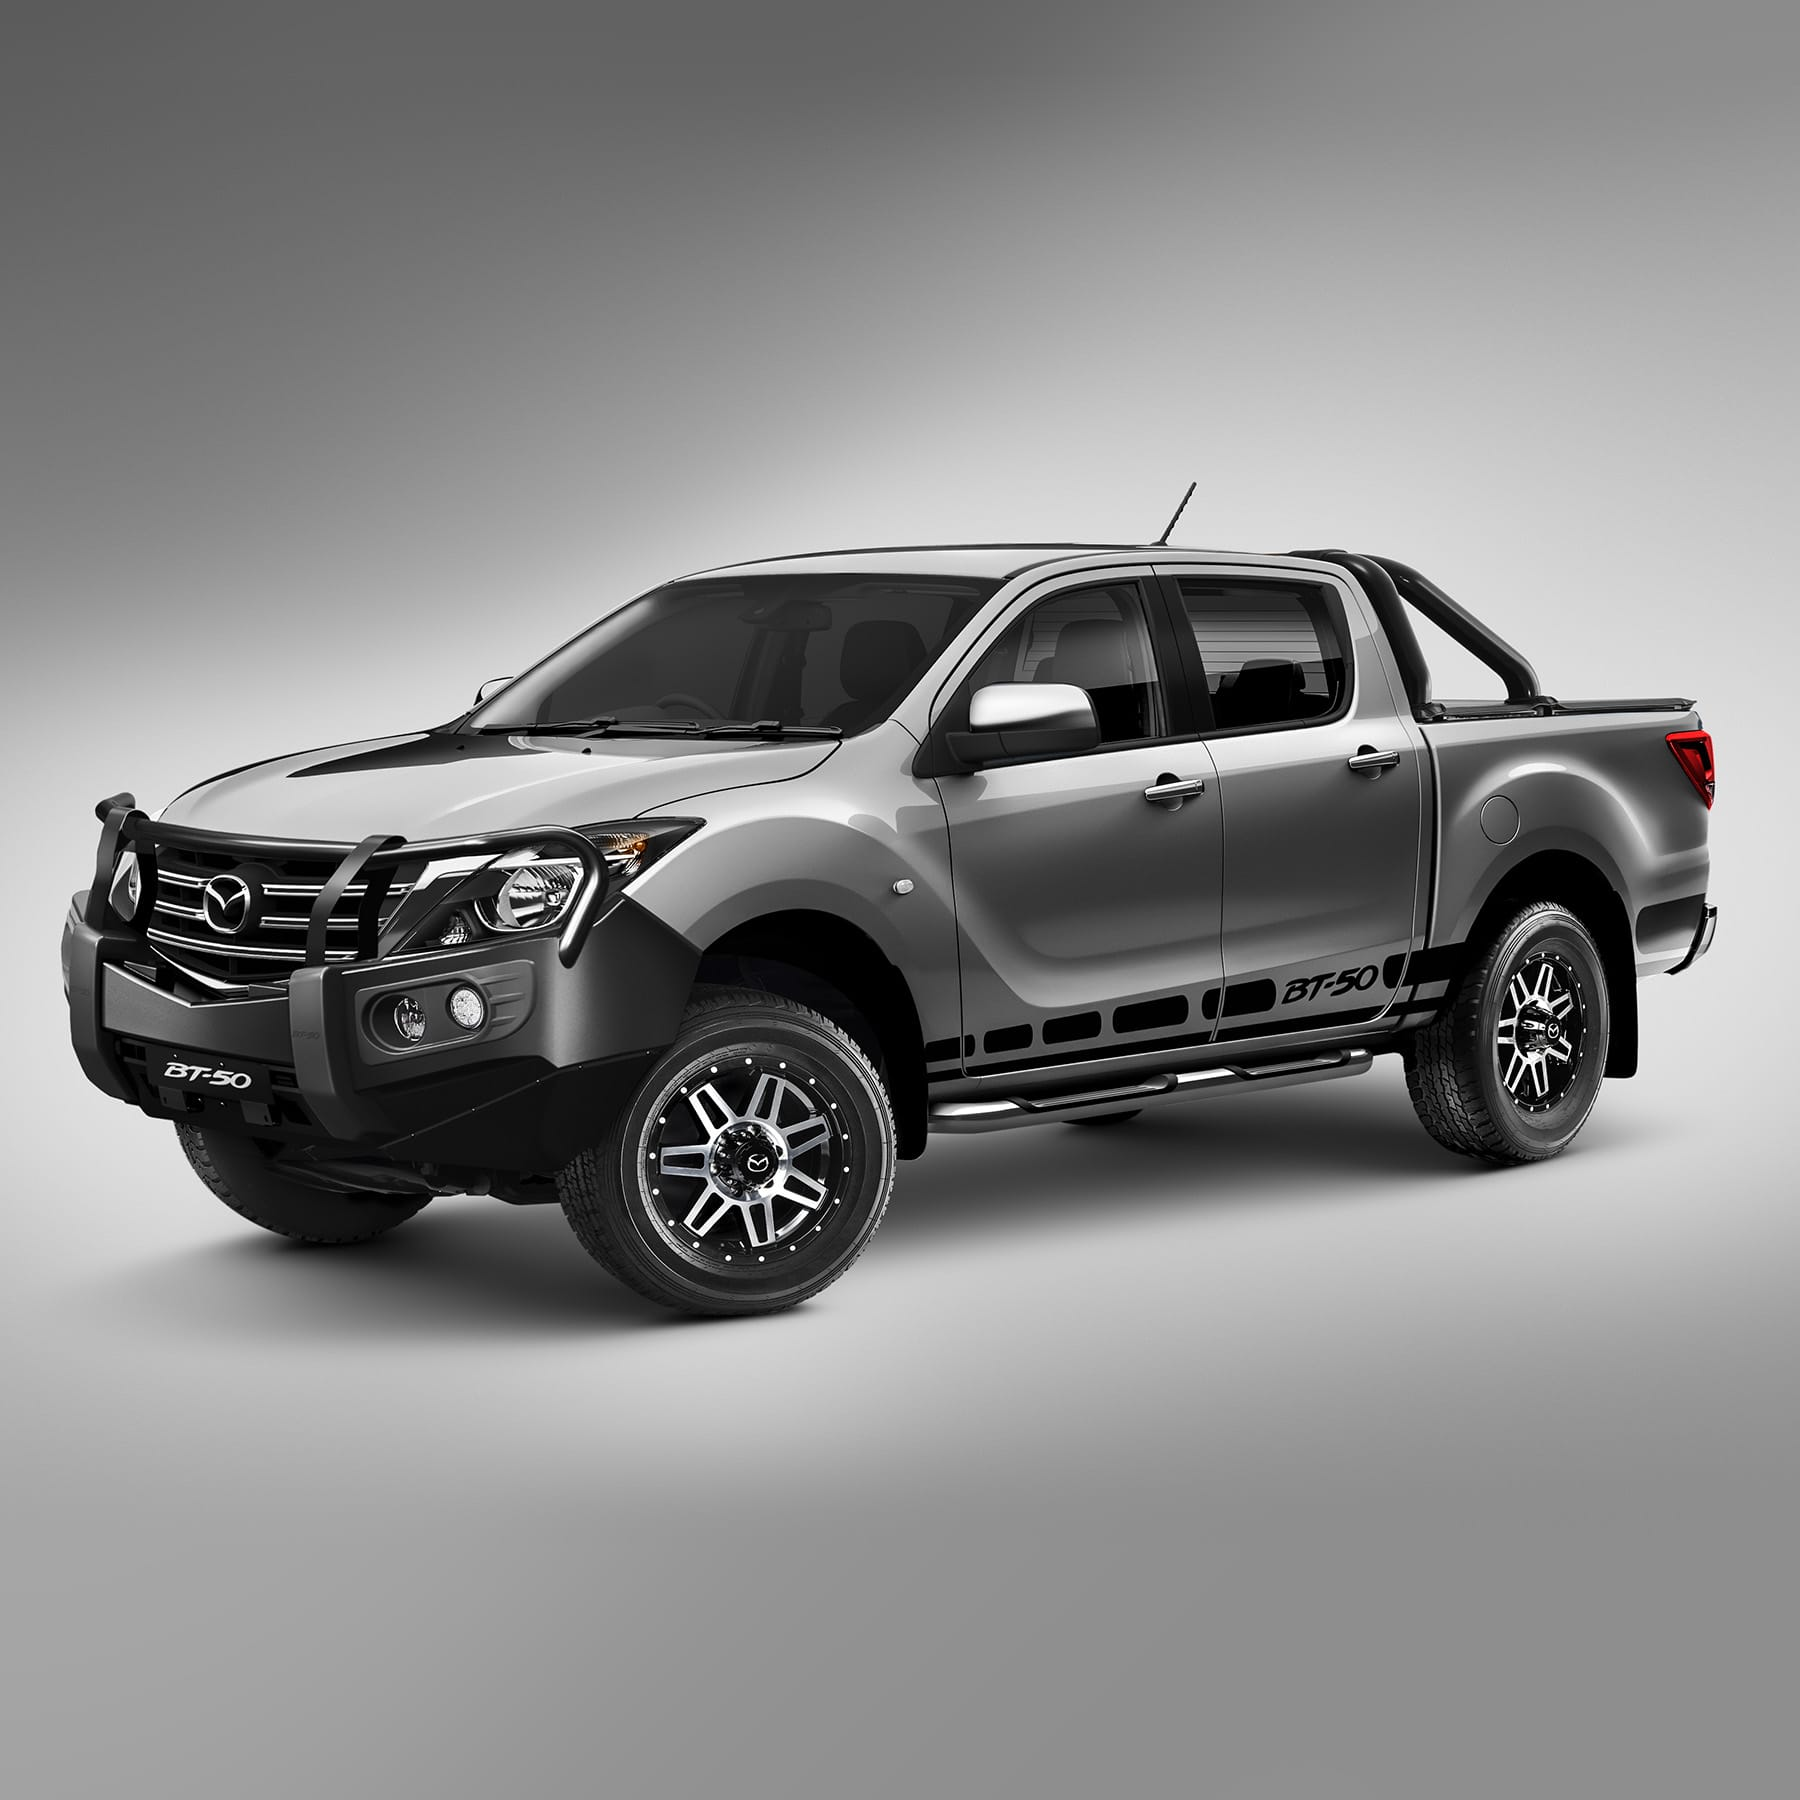 mazda accessories personalise your mazda bt 50. Black Bedroom Furniture Sets. Home Design Ideas